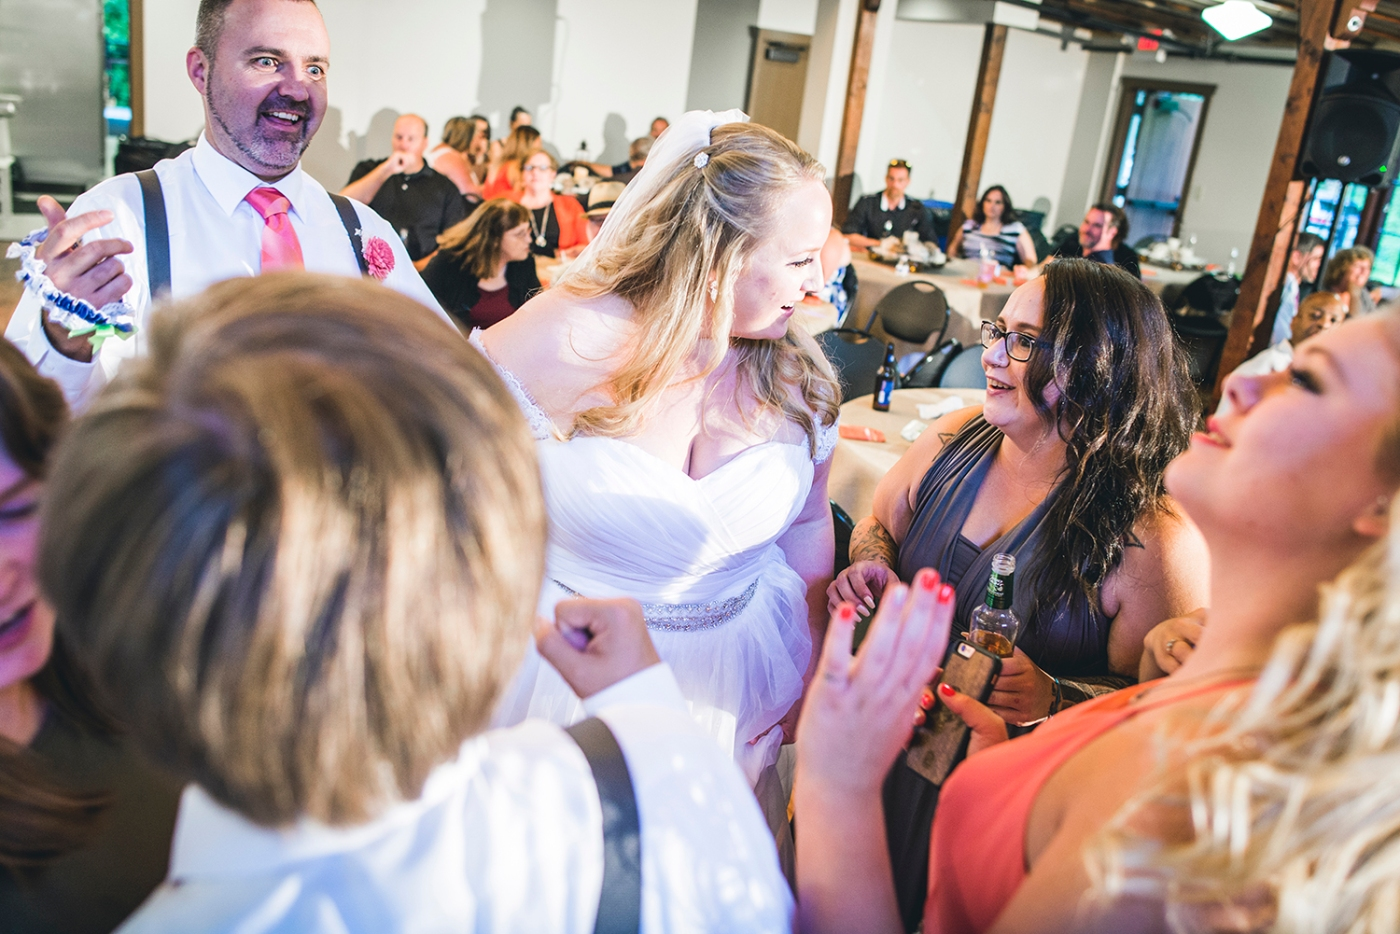 Jane_S_Seattle_photography_Kadie_and_Steve_2016_Des_Moines_Marina_Wedding_DSC_2172